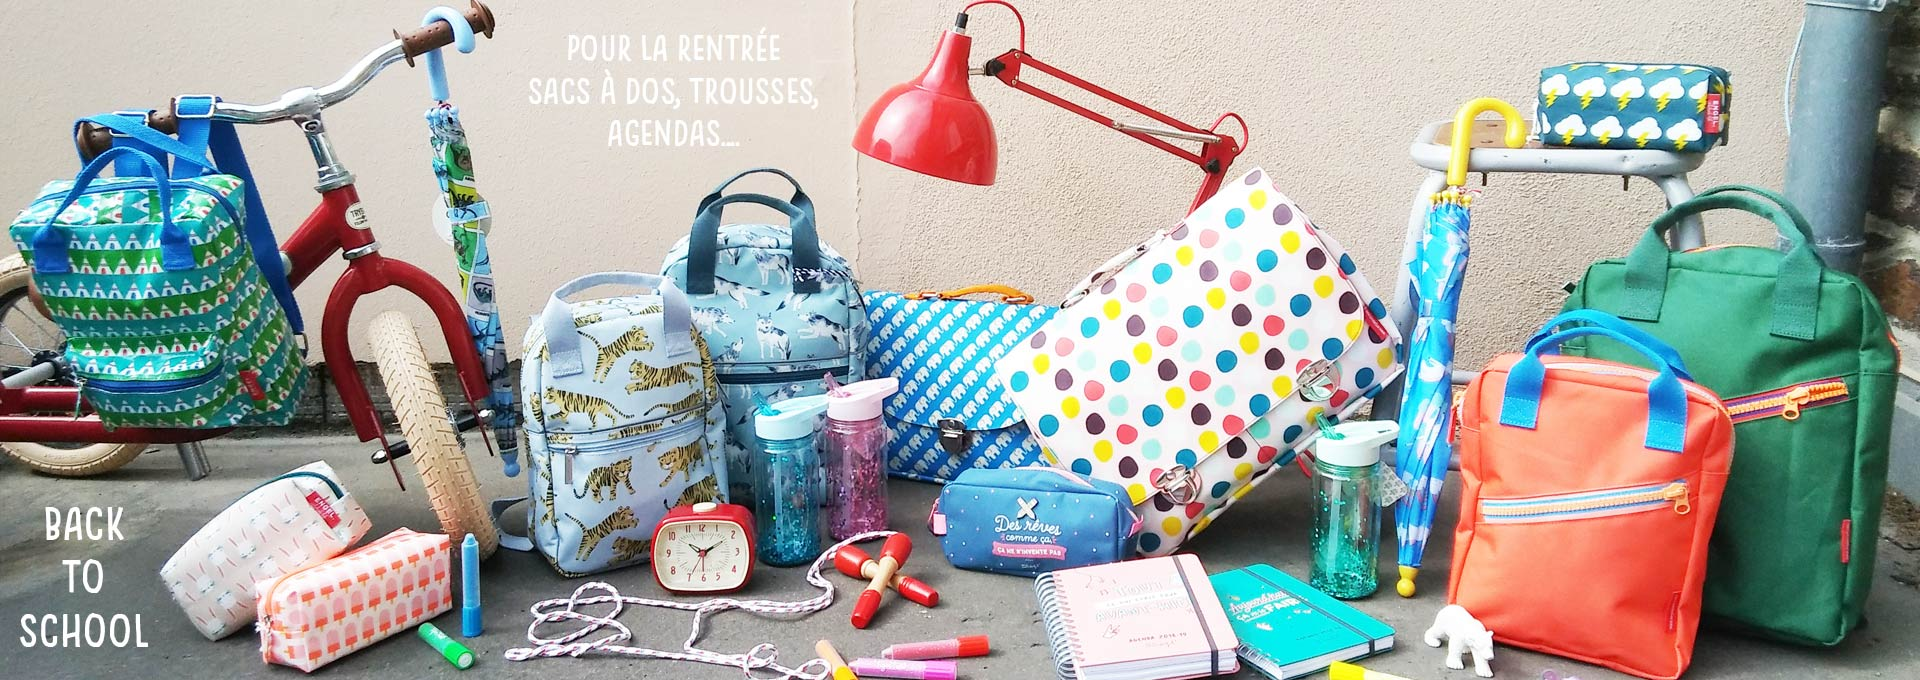 ecole rentree classe maternelle ecolier sac a dos